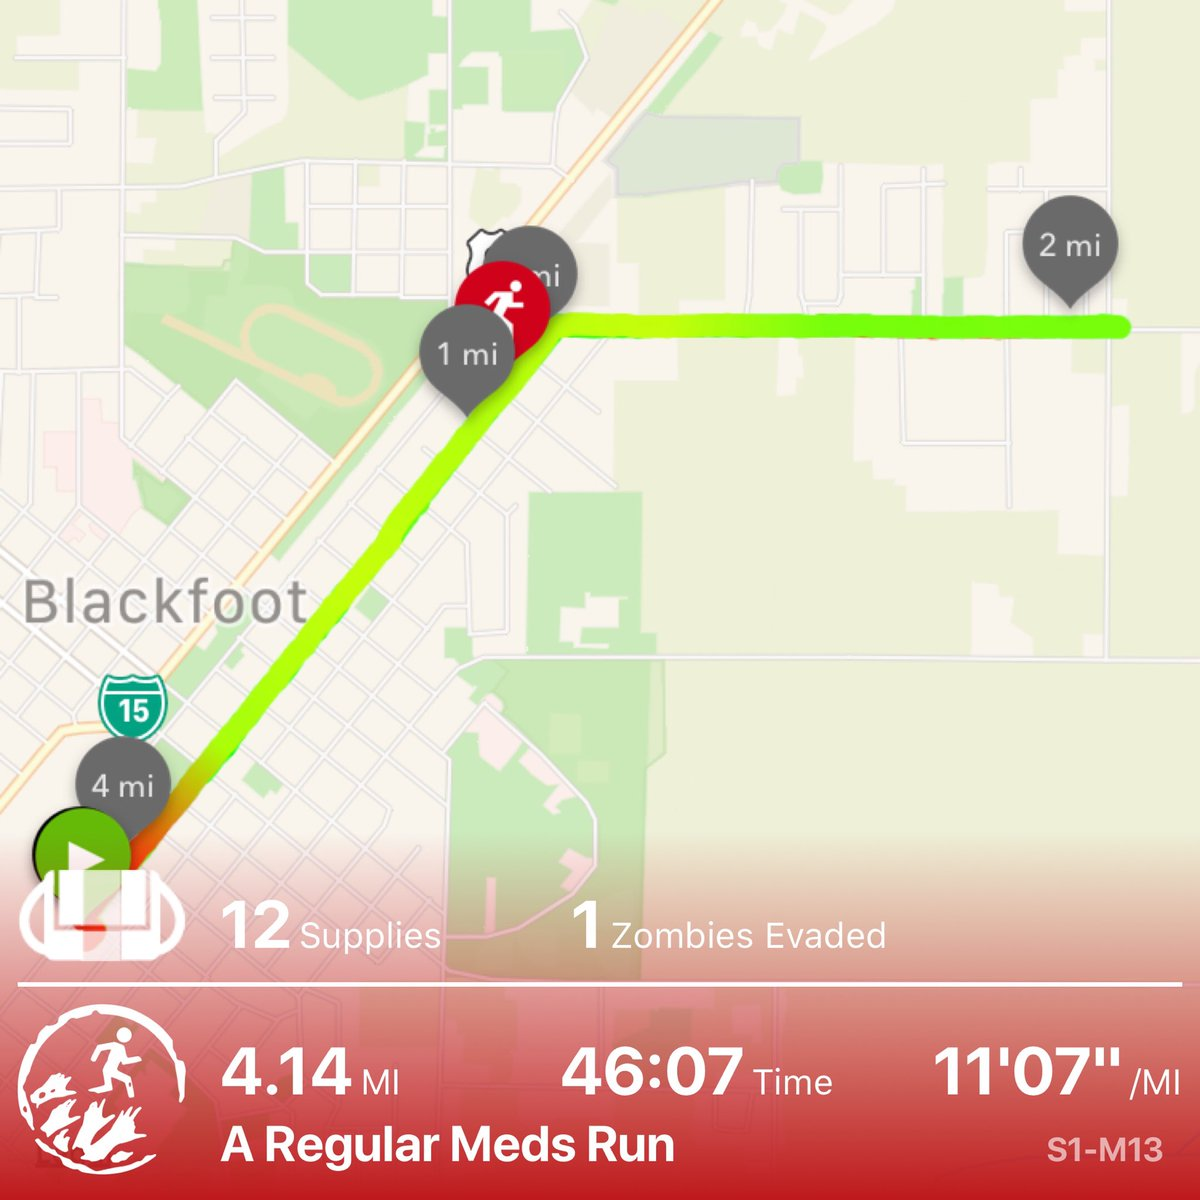 Almost cornered in a research facility by massive zombie mob. Only just made it out #zombiesrun <br>http://pic.twitter.com/zfh6XThEpz